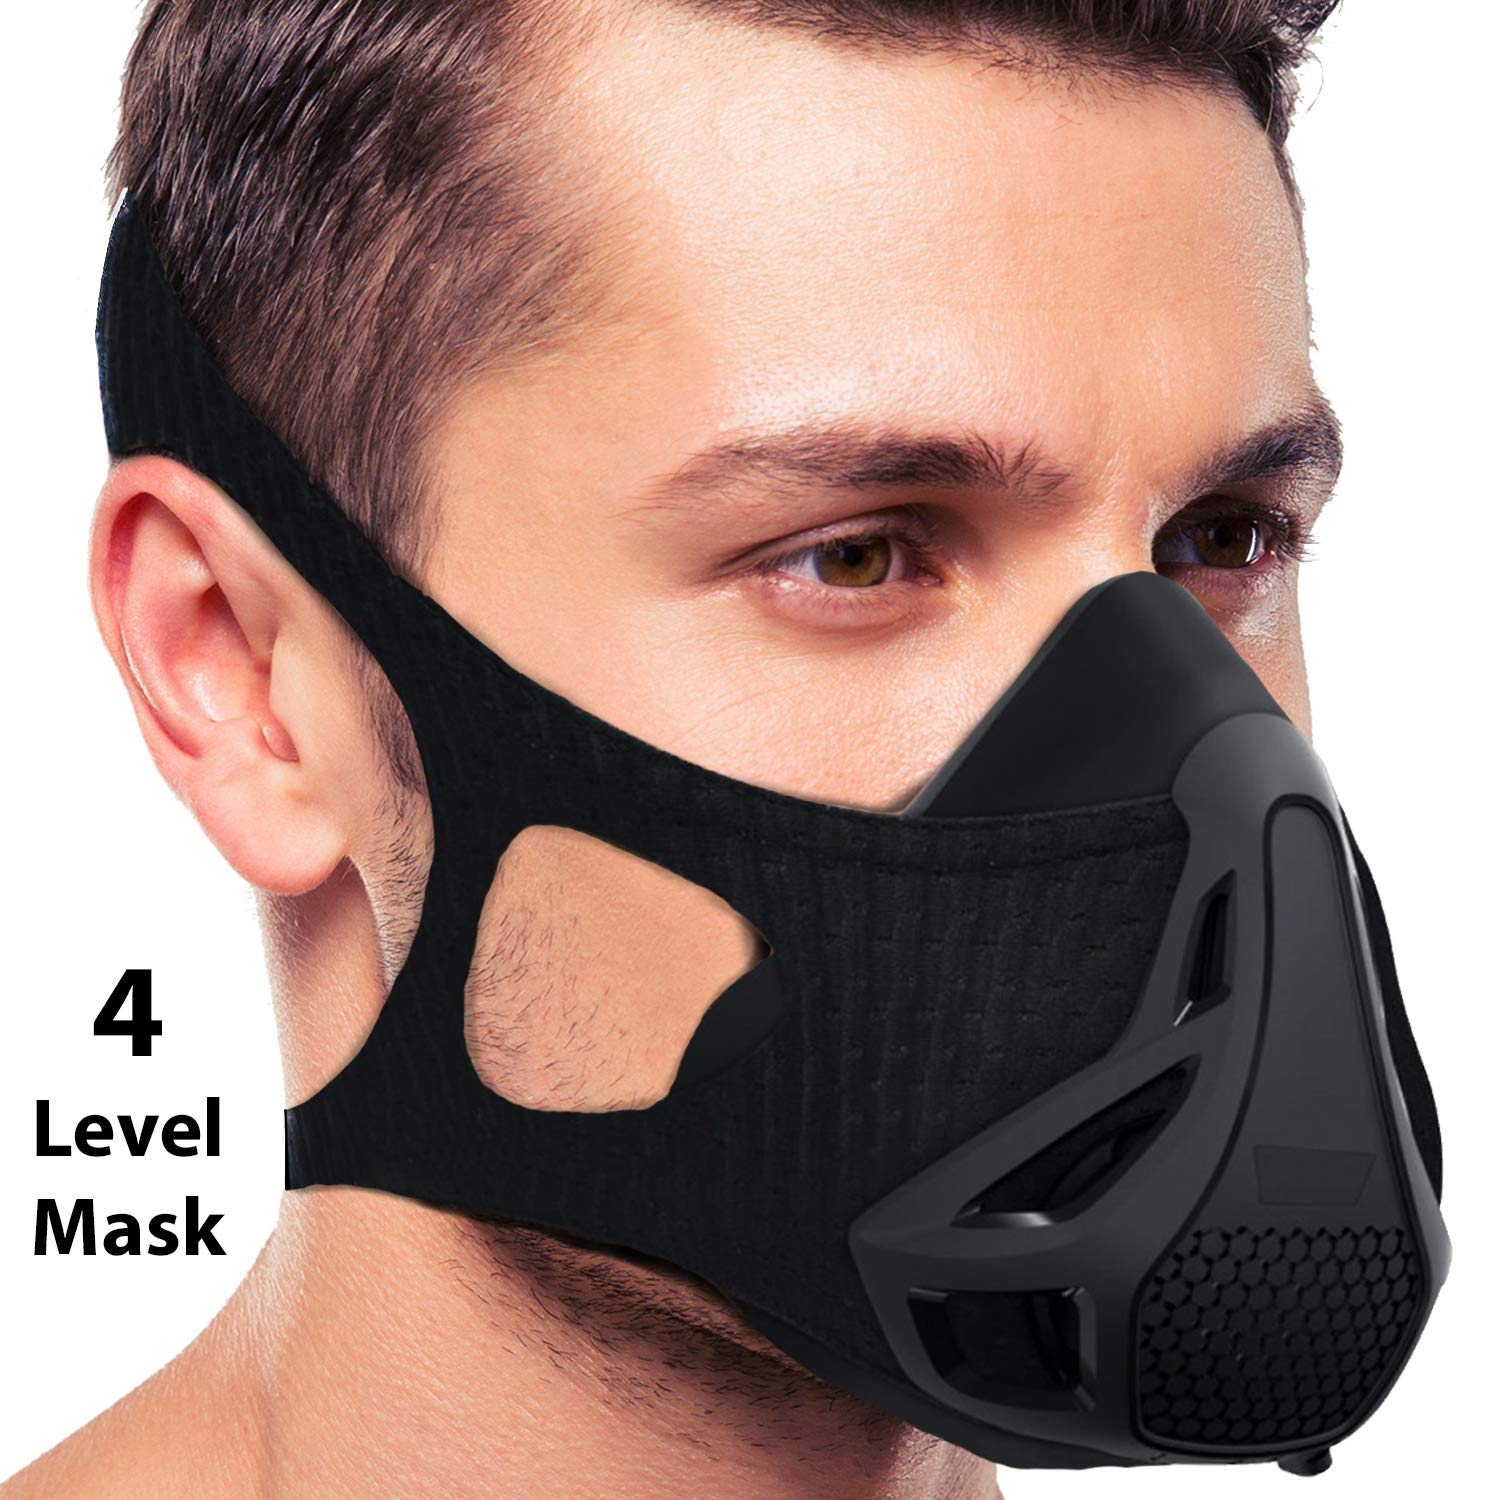 16 Levels Workout Mask | Sports Running Mask Training Workout Mask Jogging Fitness Increase Breathing Elevation Exercise Air High Altitude Oxygen Resistance Endurance Biking Run Face Men Women (III)